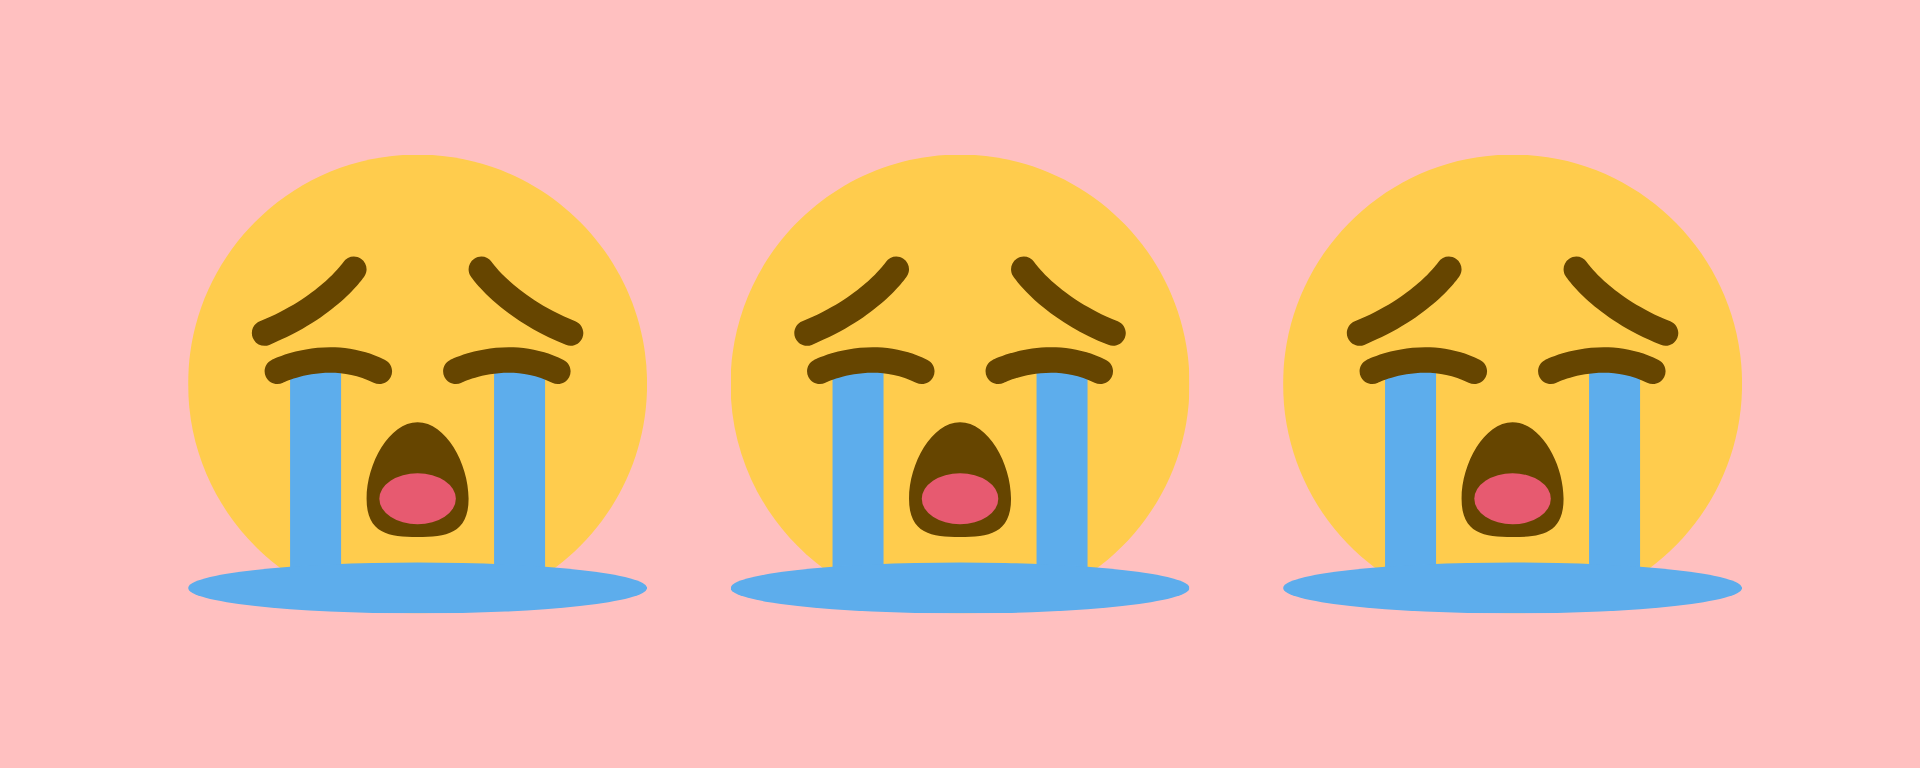 Three yellow sad crying face emojis on a pink background